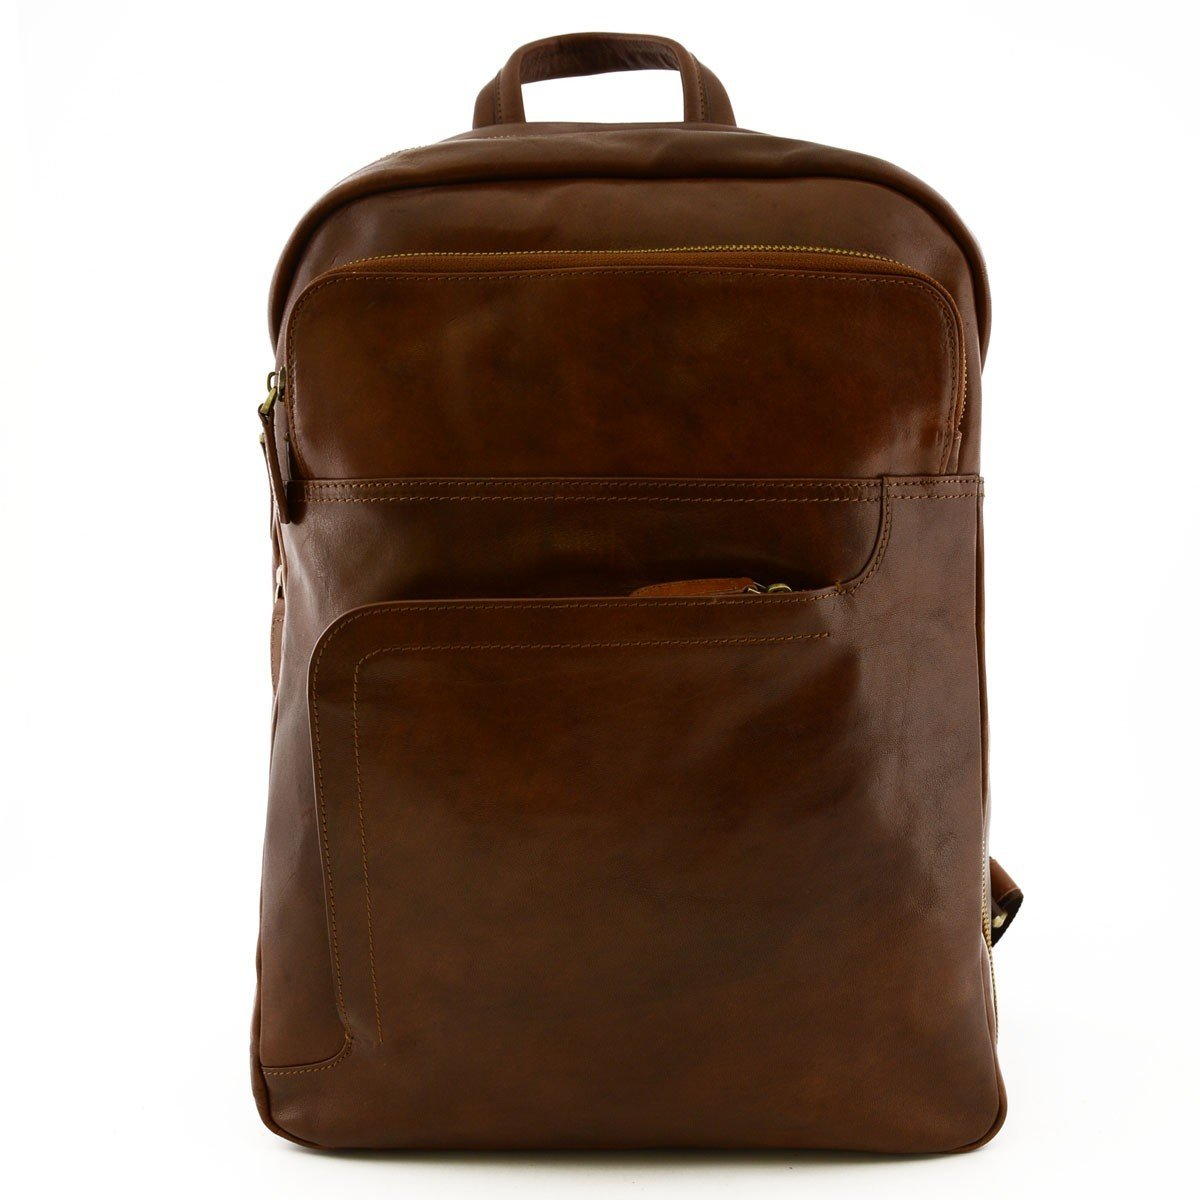 Made In Italy Genuine Leather Man Backpack With Laptop Padded Pocket Color Brown - Backpack   B018W38M92